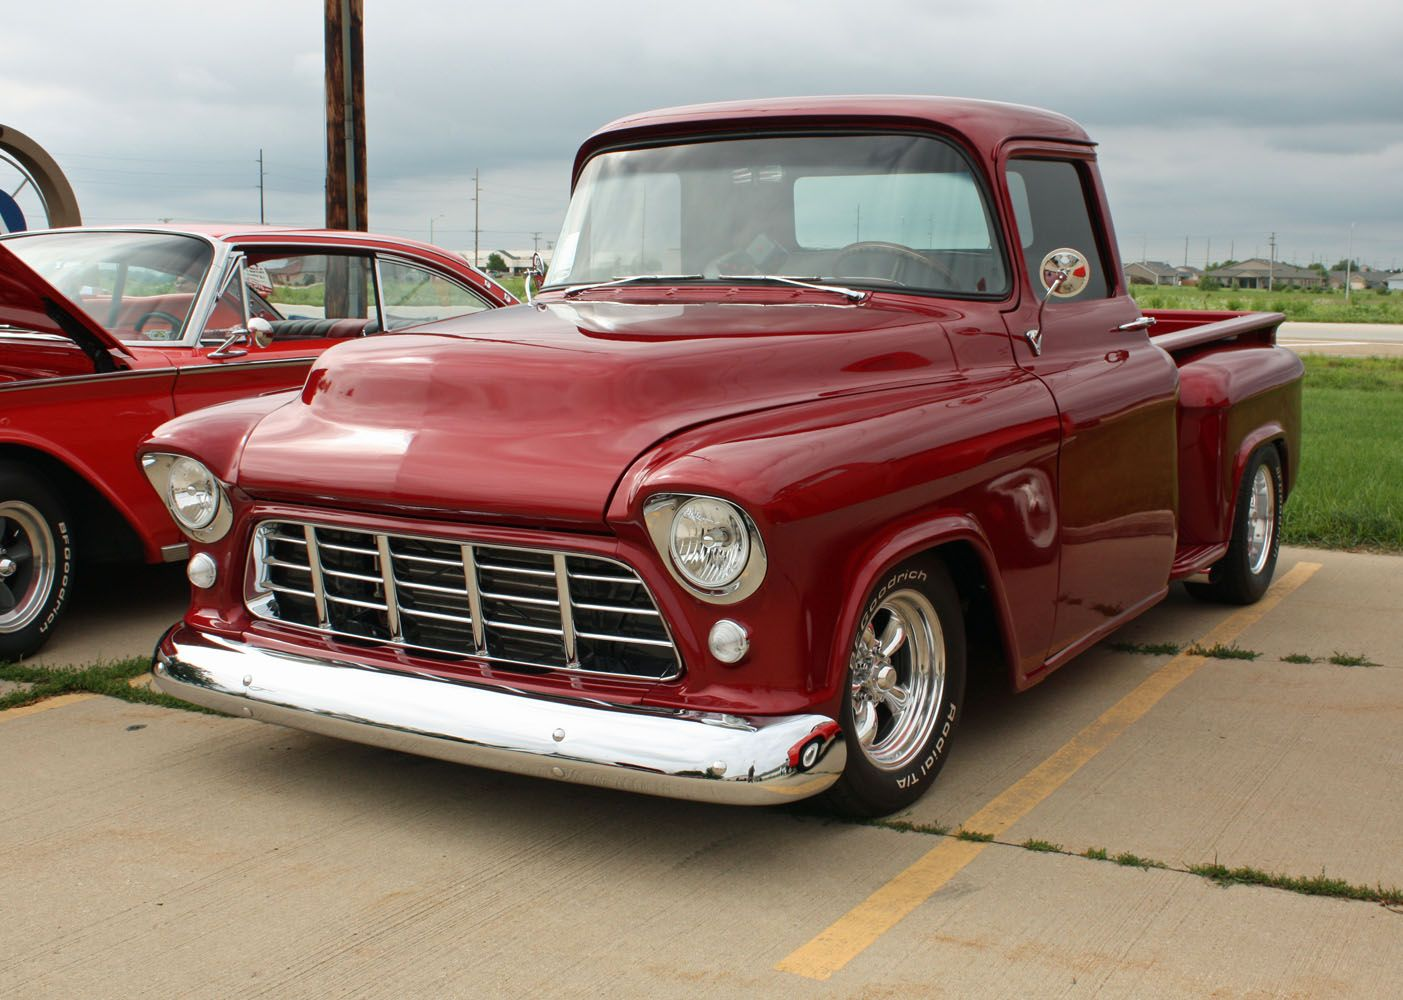 1955 chevrolet pro street truck youtube - 1955 Chevy Pickup 1955 Second Series Chevy Gmc Pickup Truck